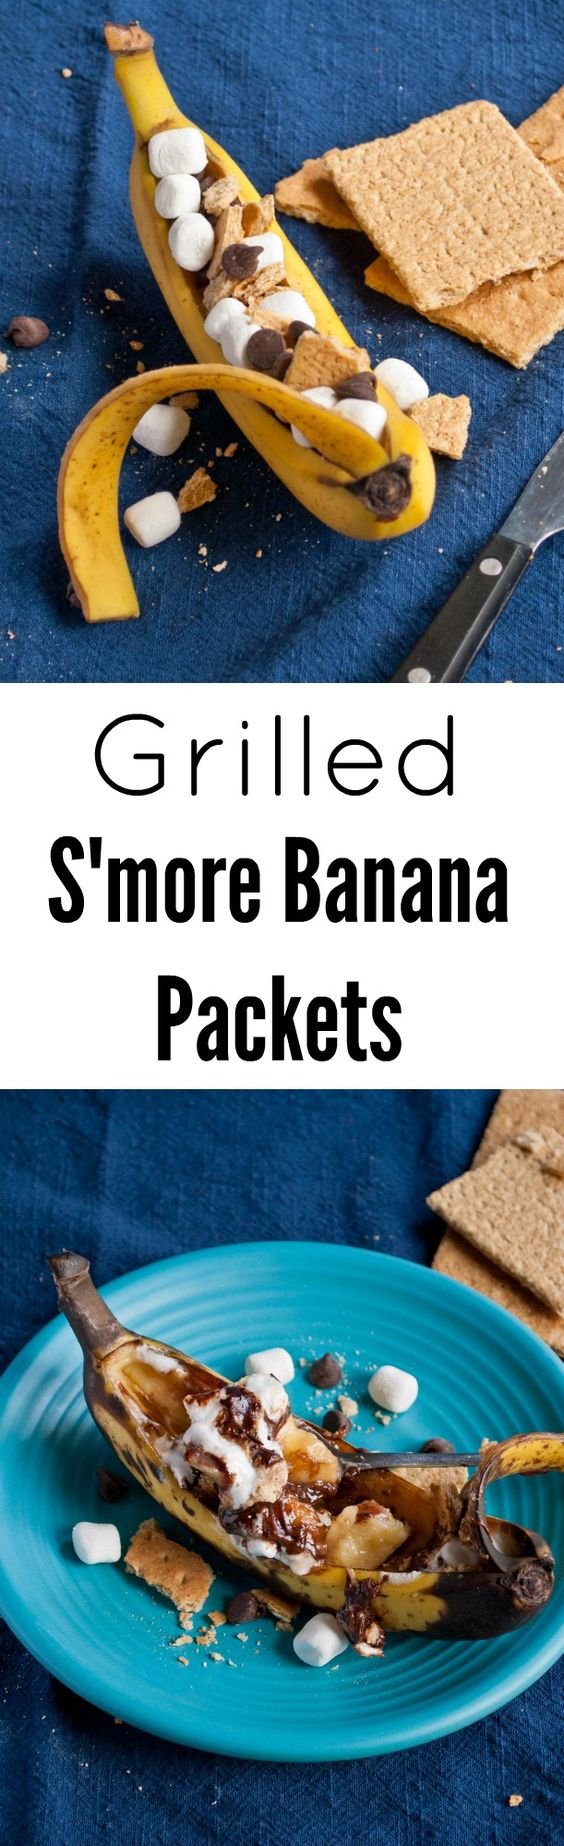 These Grilled S'more Banana Packets are such a fun and easy dessert ...